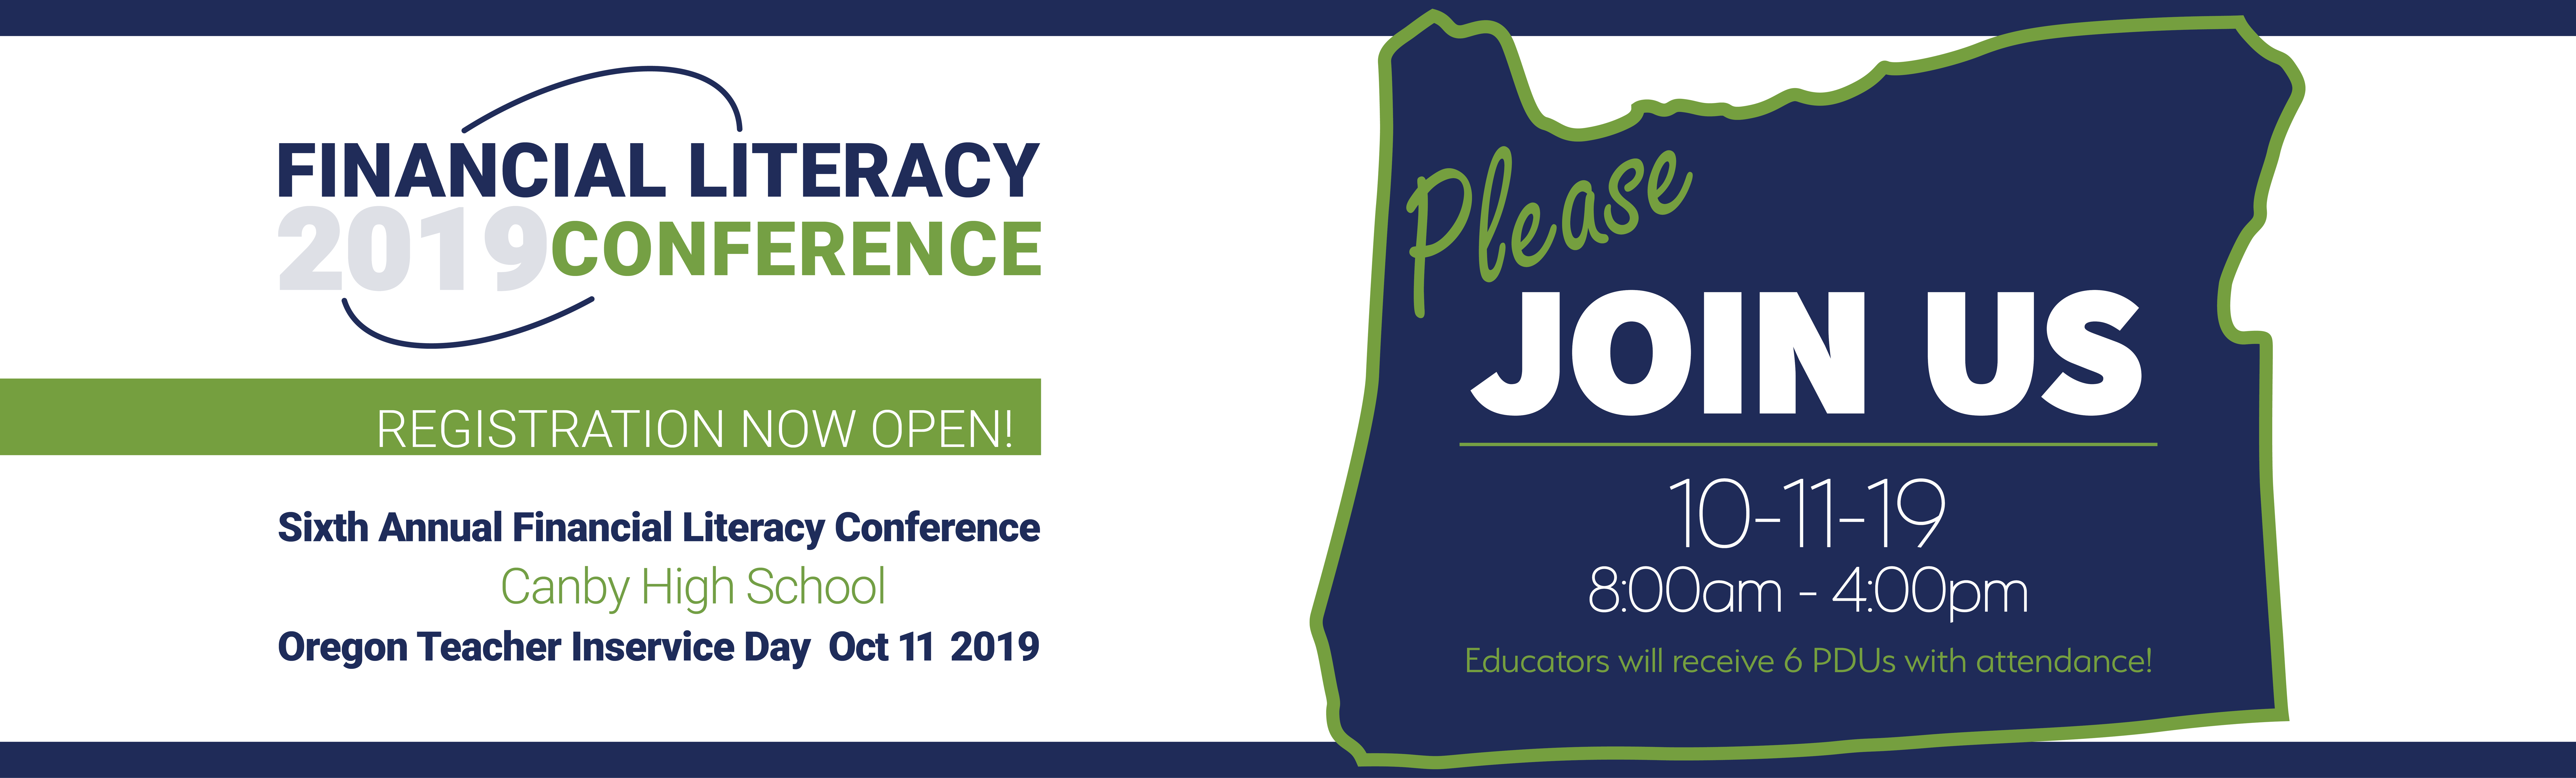 2019 Financial Literacy Conference Registration Banner